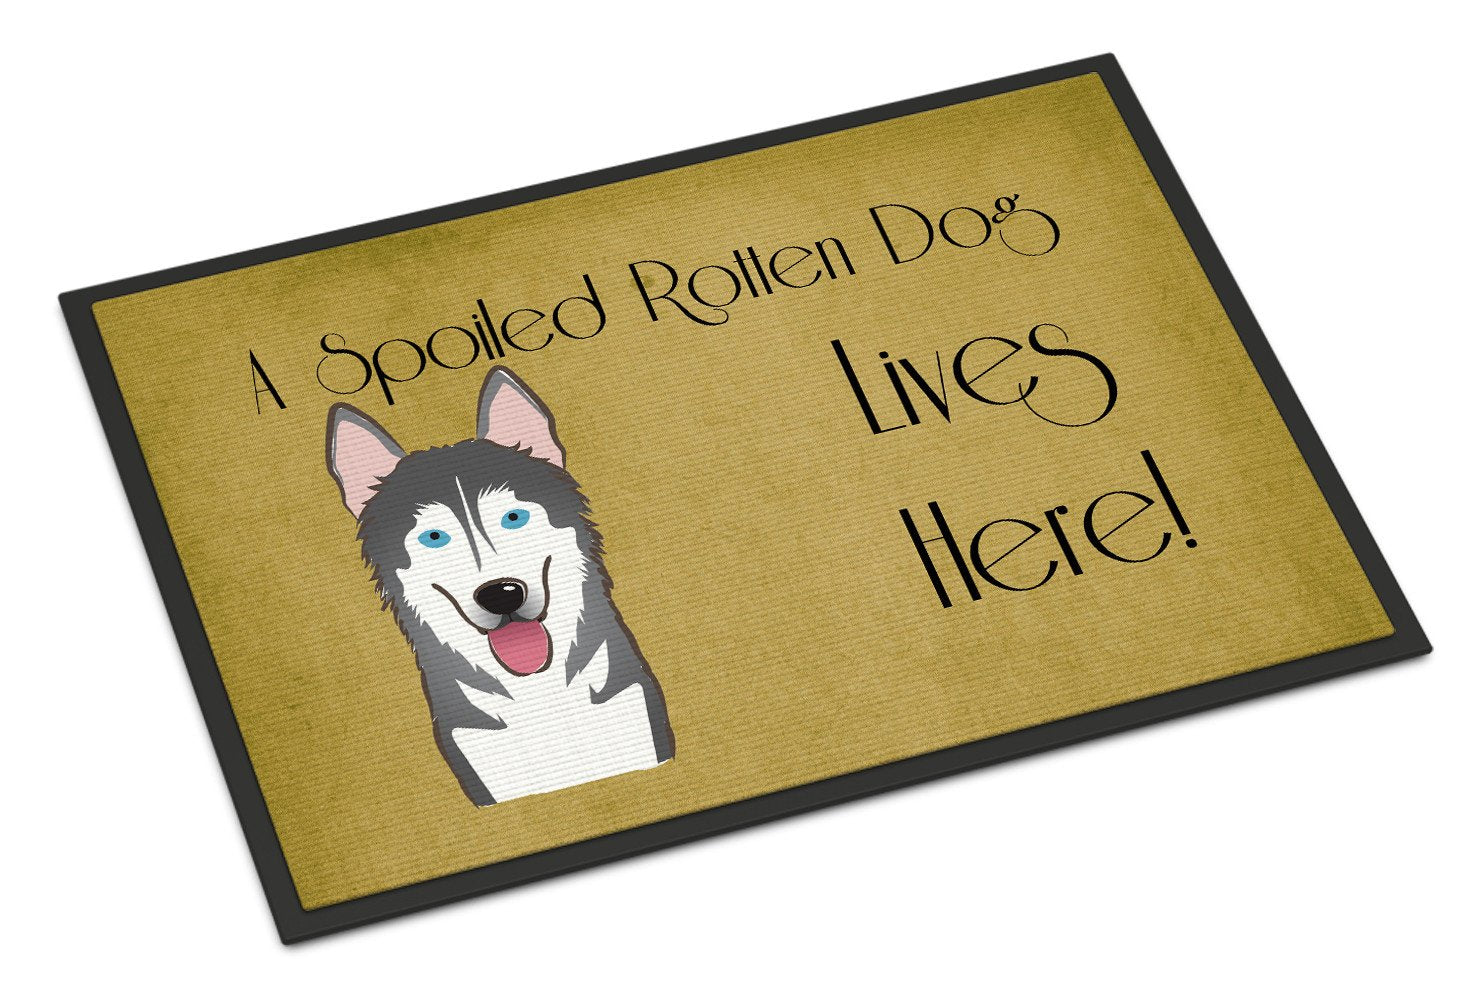 Alaskan Malamute Spoiled Dog Lives Here Indoor or Outdoor Mat 18x27 BB1466MAT - the-store.com